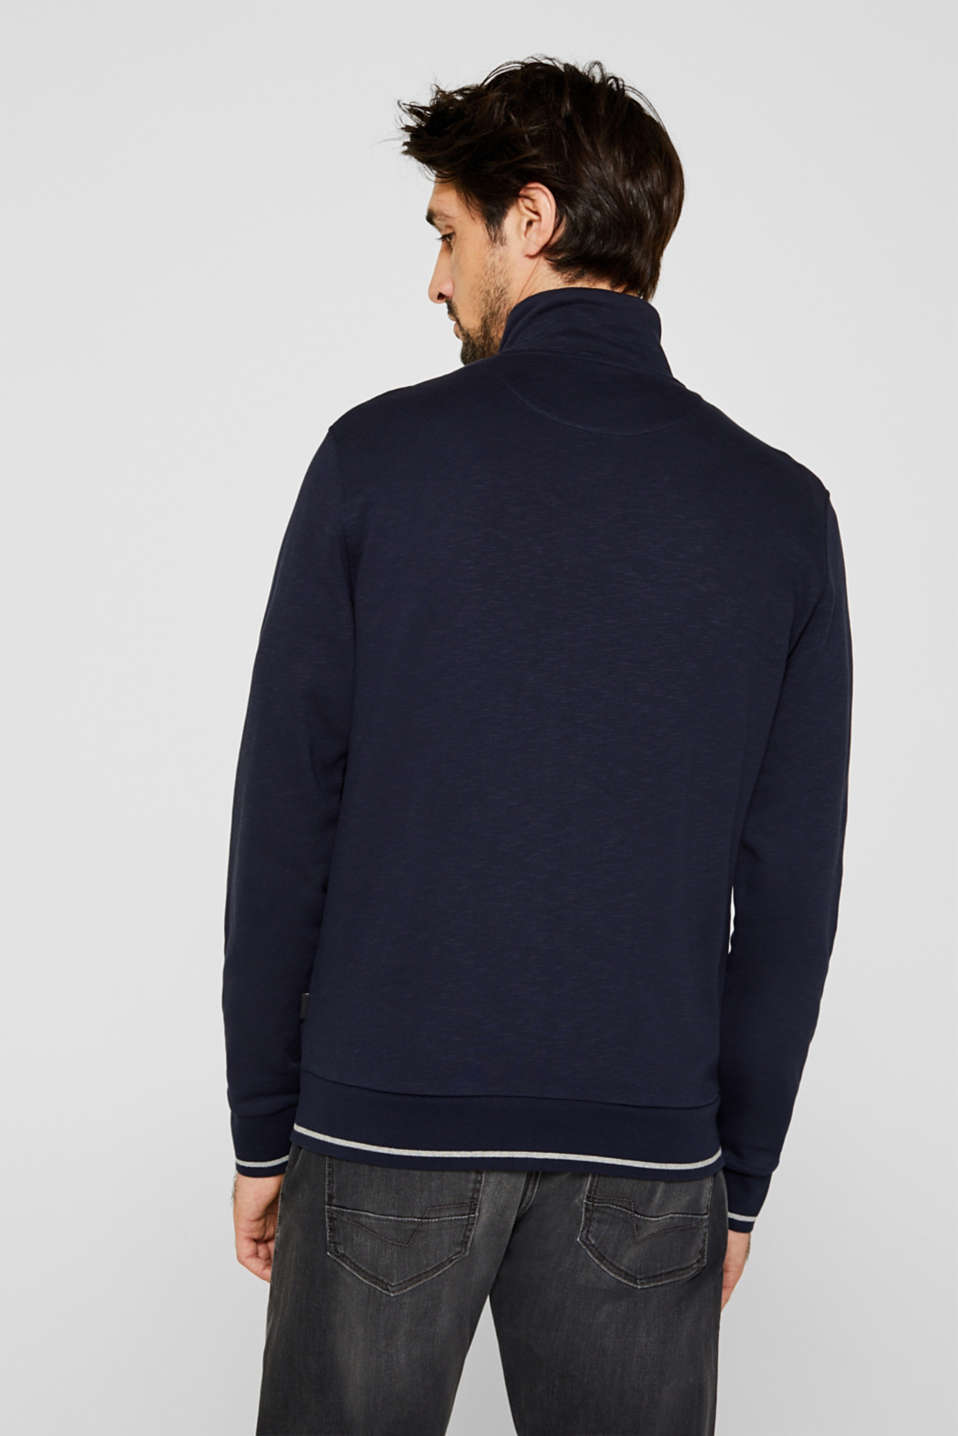 Sweatshirt cardigan in 100% cotton, NAVY, detail image number 3